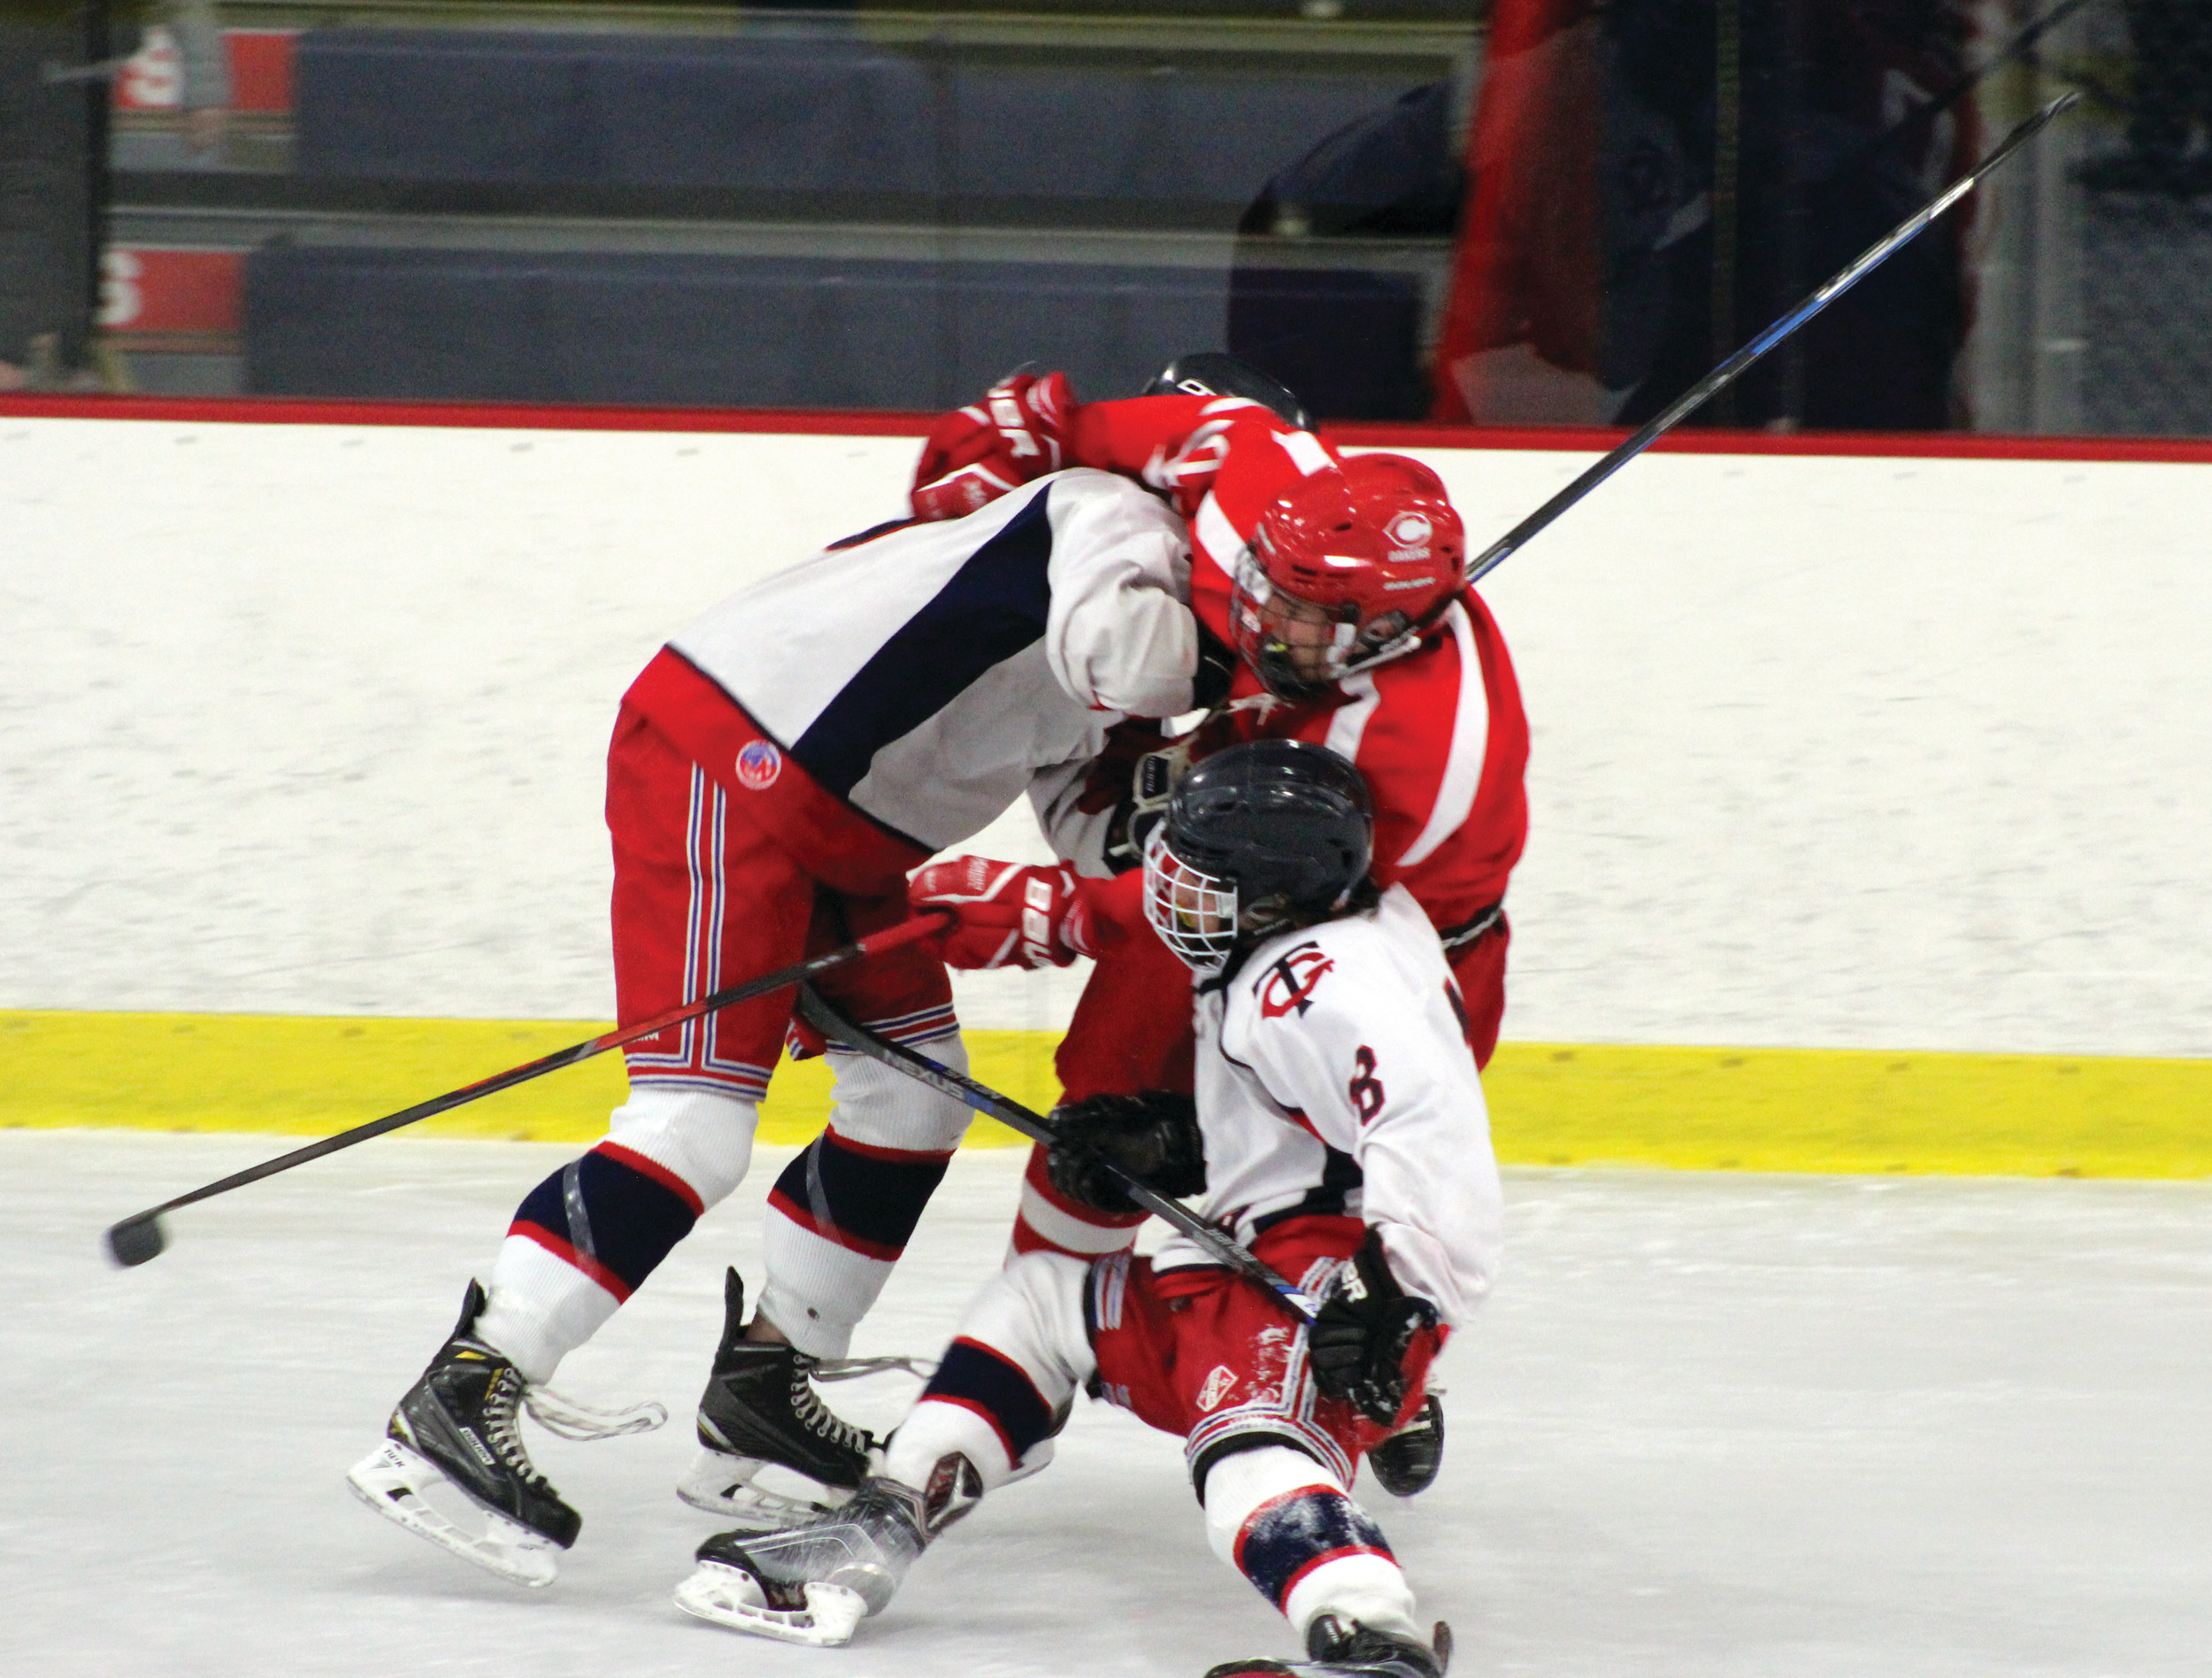 COMING UP SHORT: Toll Gate lost 5-0 and 2-1 on Saturday and Sunday in the Division II boys hockey semifinals, as top-seeded RMR secured a spot in the division finals. Jack Dean (8) netted the Titans' lone goal in the series.